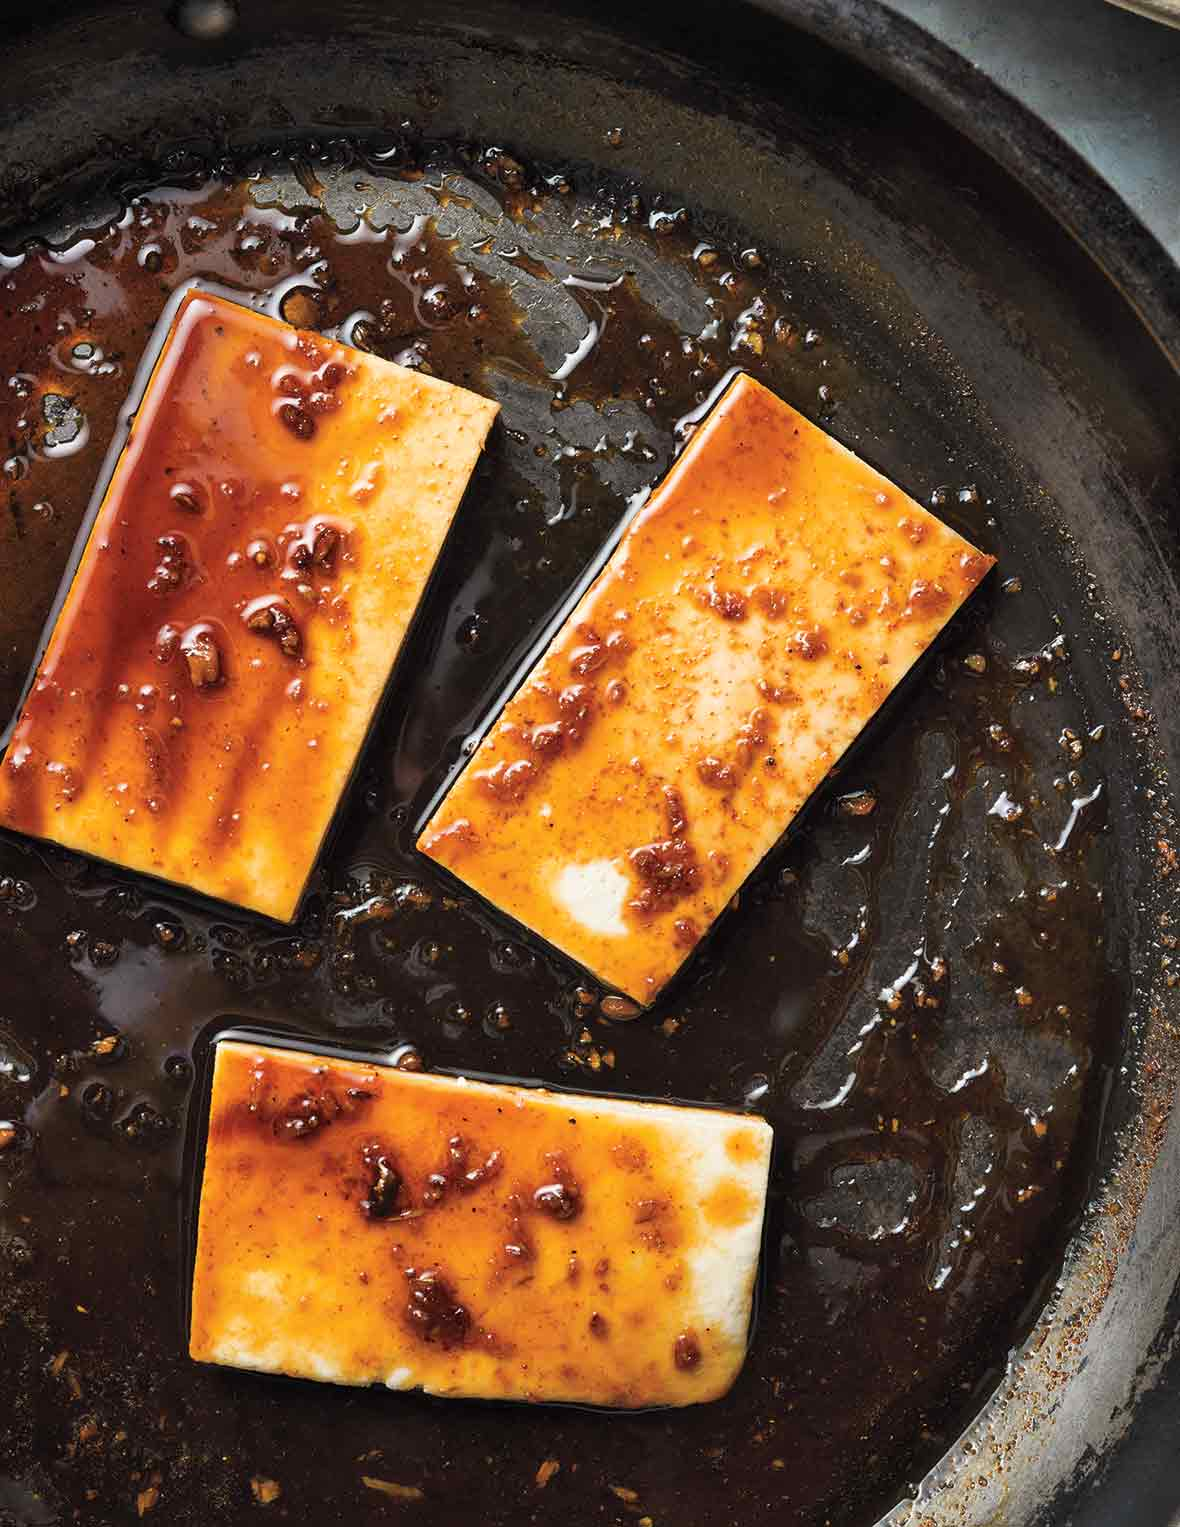 Three portions of glazed tofu in a skillet